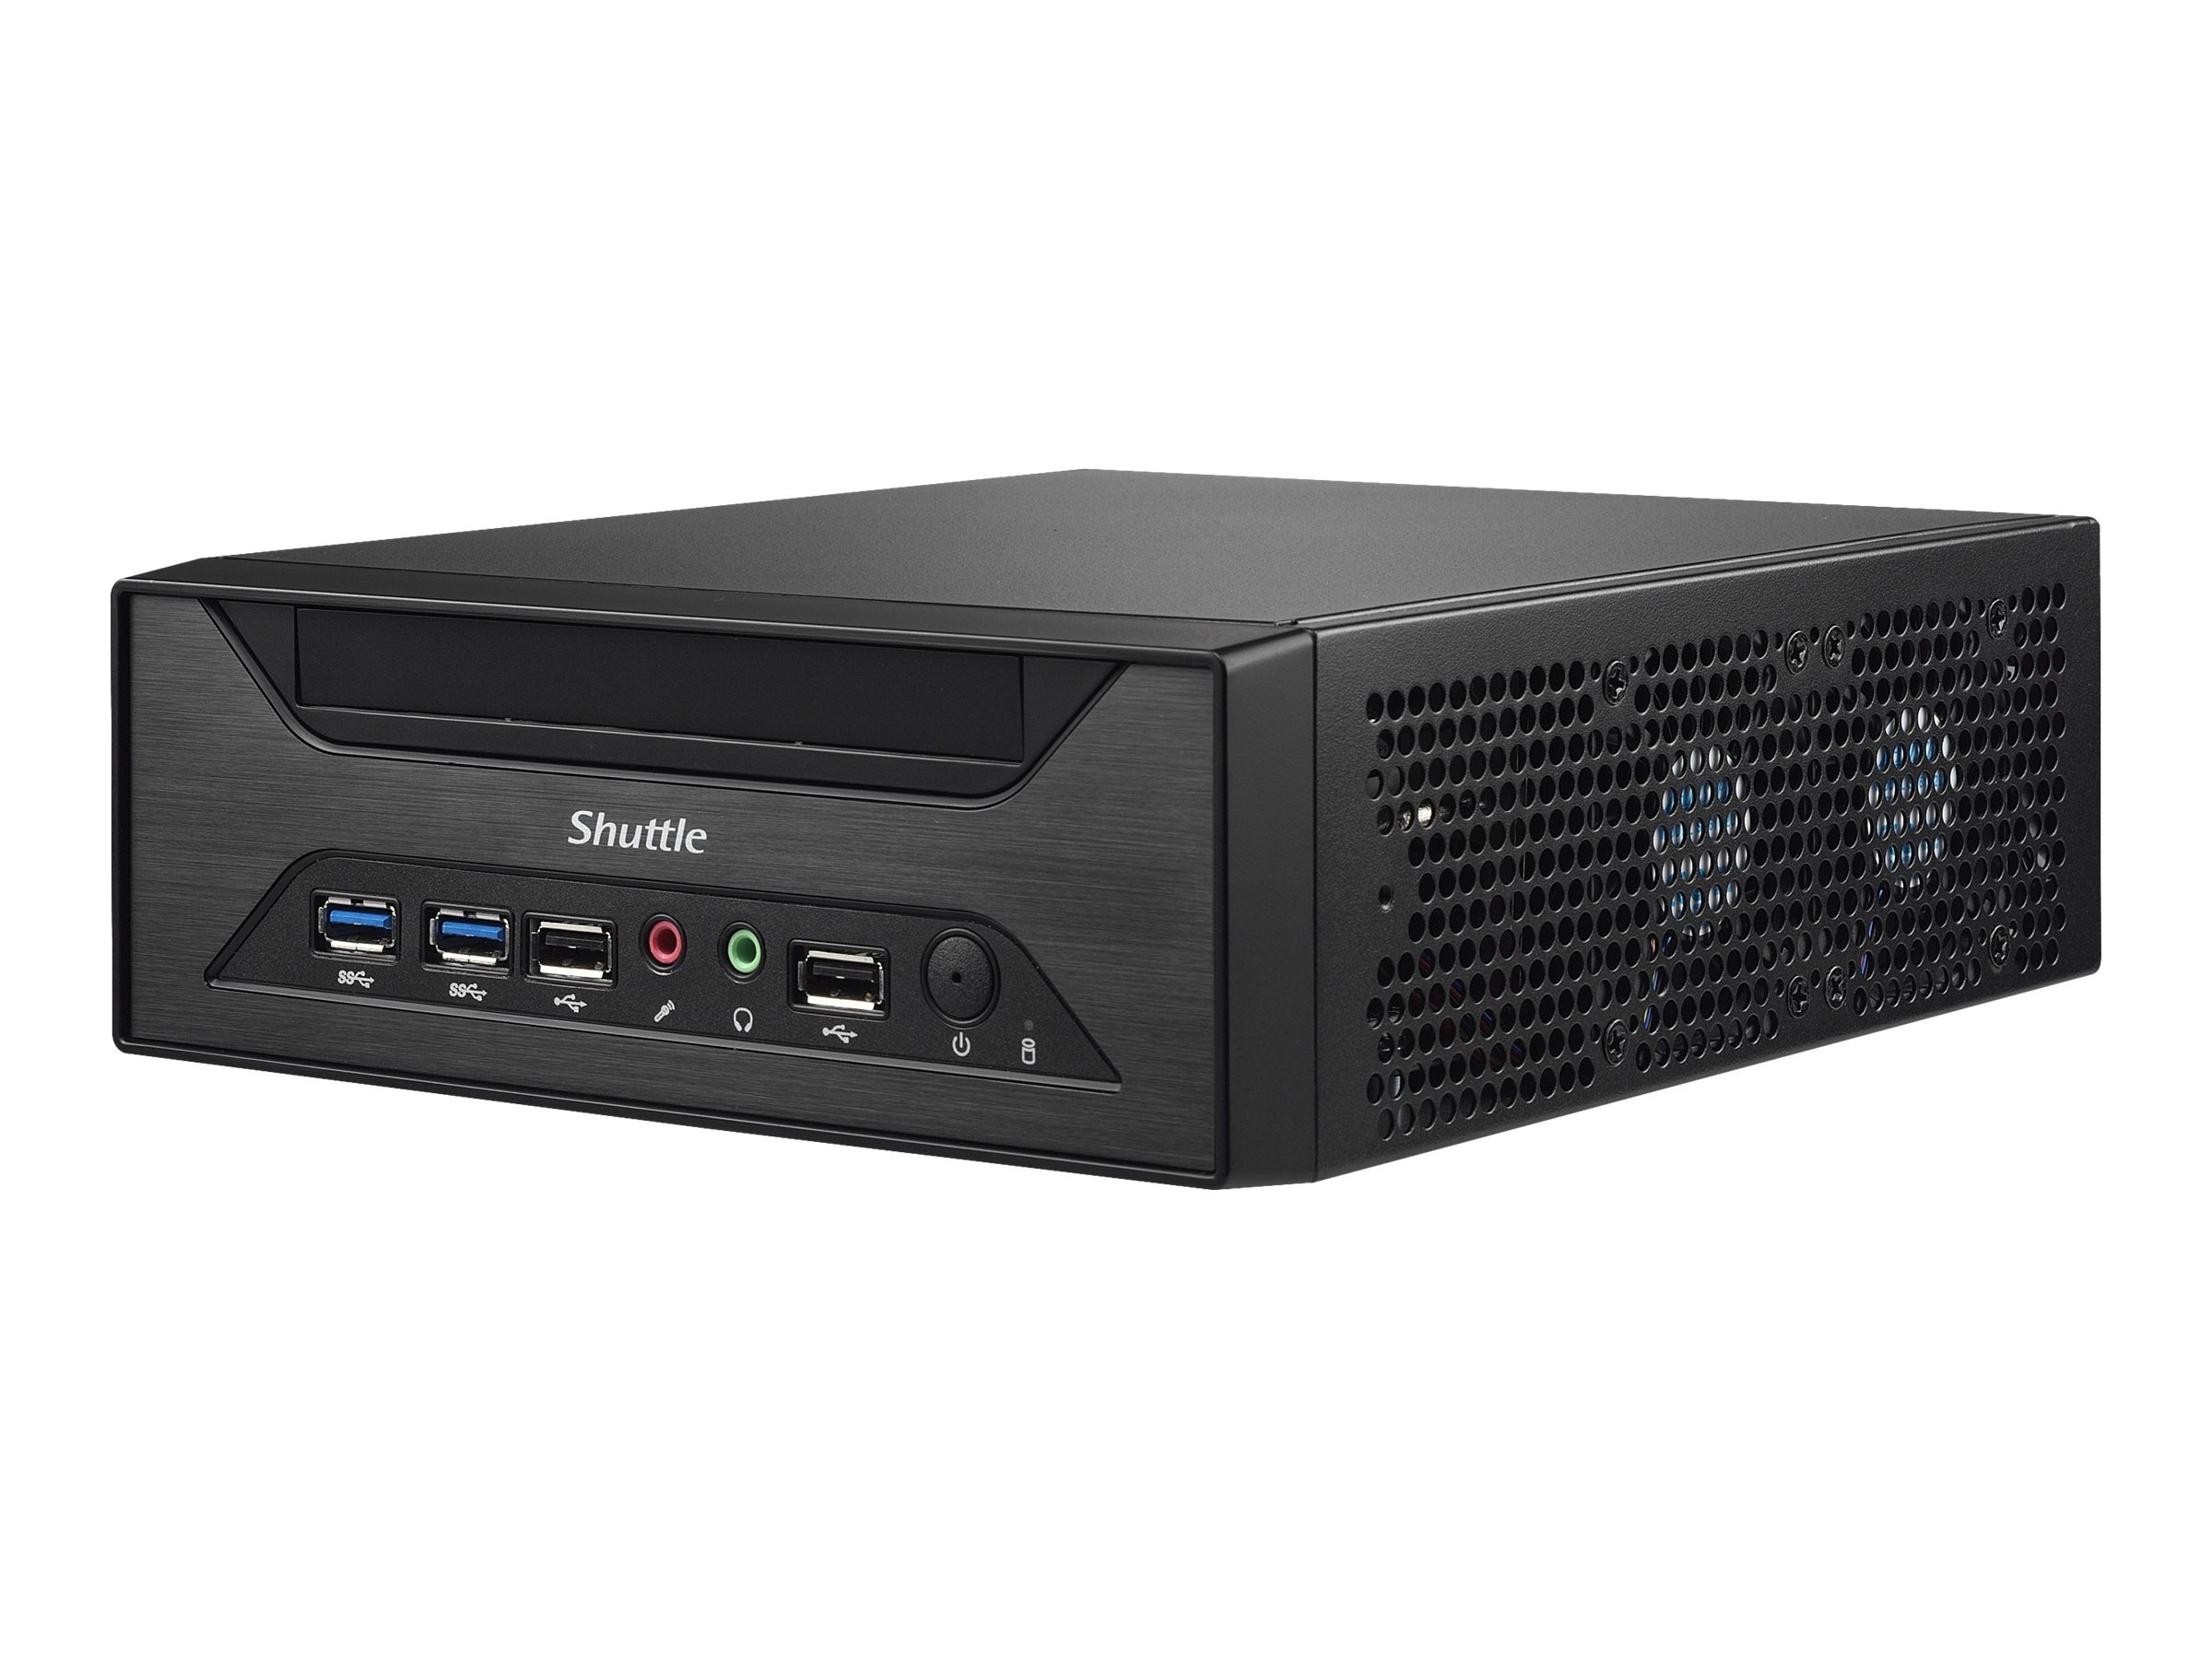 Shuttle XPC slim XH310 - Barebone - Slim-PC - LGA1151 Socket - Intel H310 - GigE